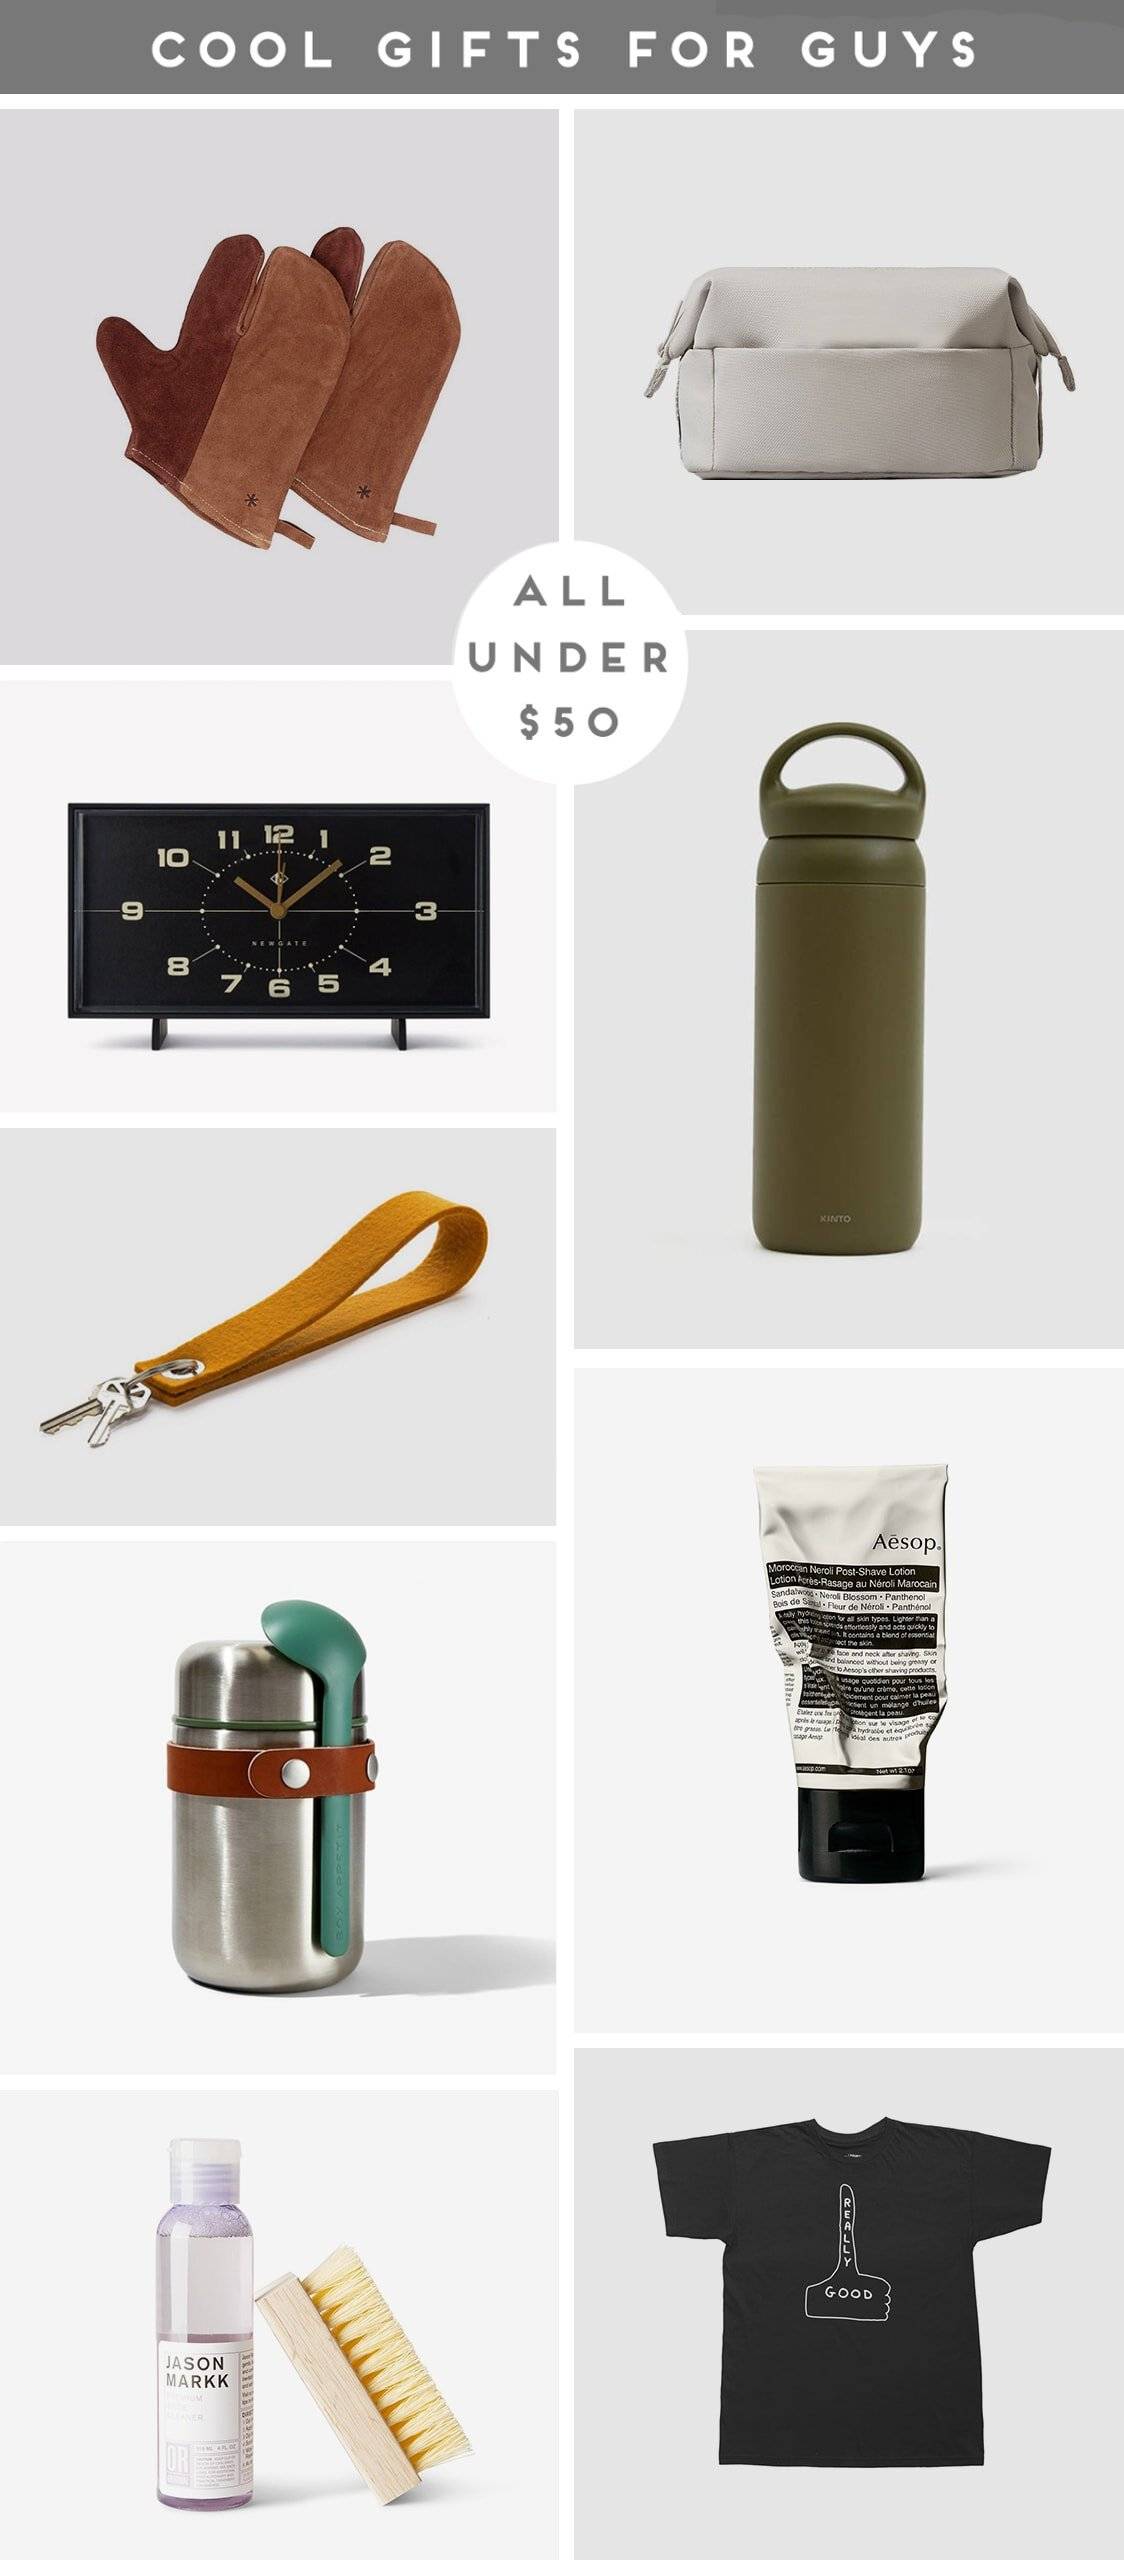 A roundup of photos that feature cool gifts for guys (all under $50).